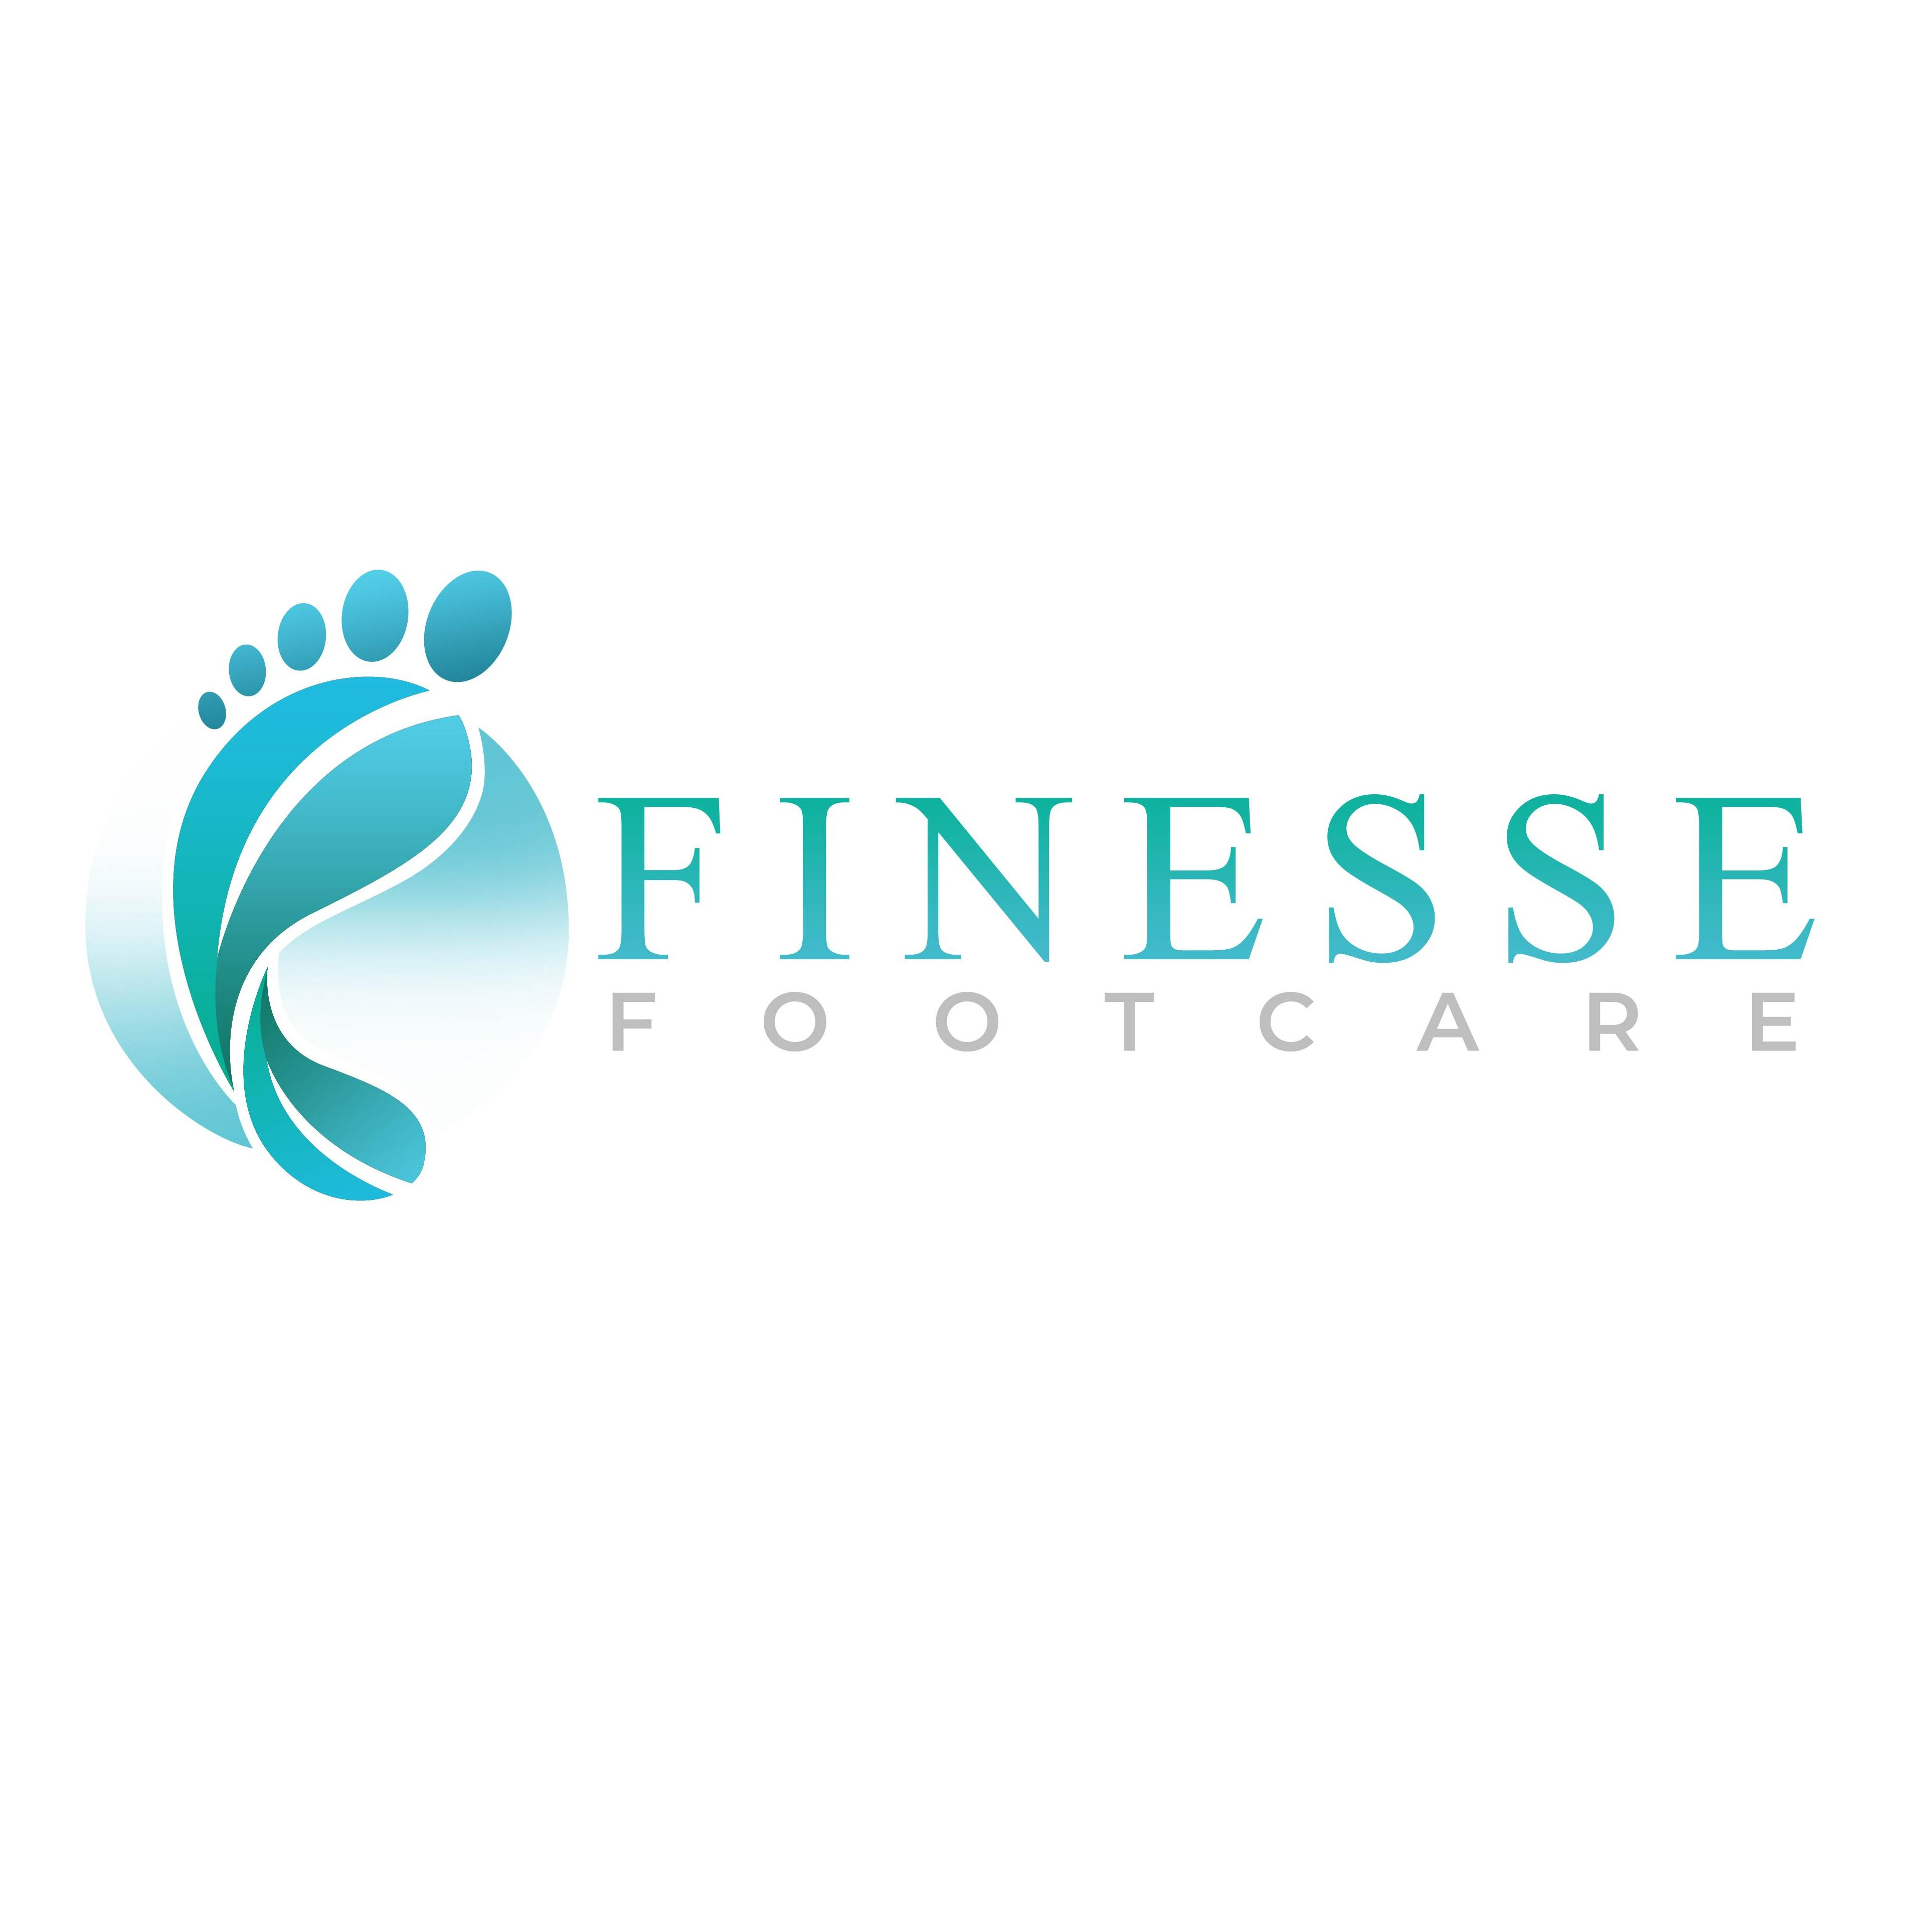 Finesse Foot Care - Lyndhurst, OH 44124 - (216)382-8070 | ShowMeLocal.com